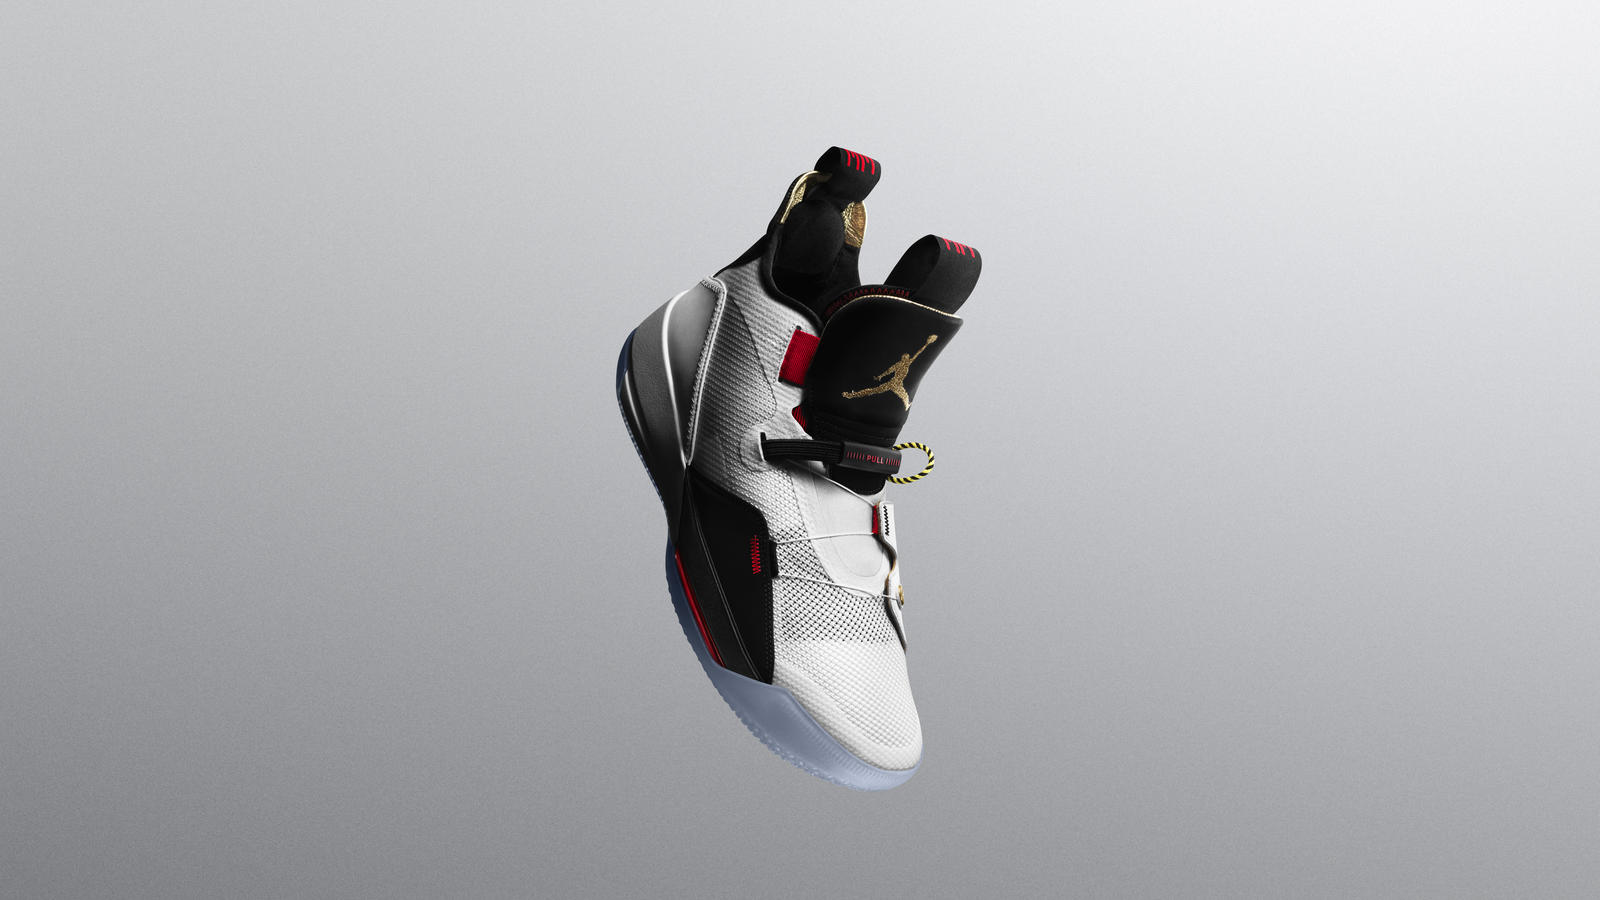 77b1dc8a078 Introducing the Air Jordan 33 with FastFit - Nike News